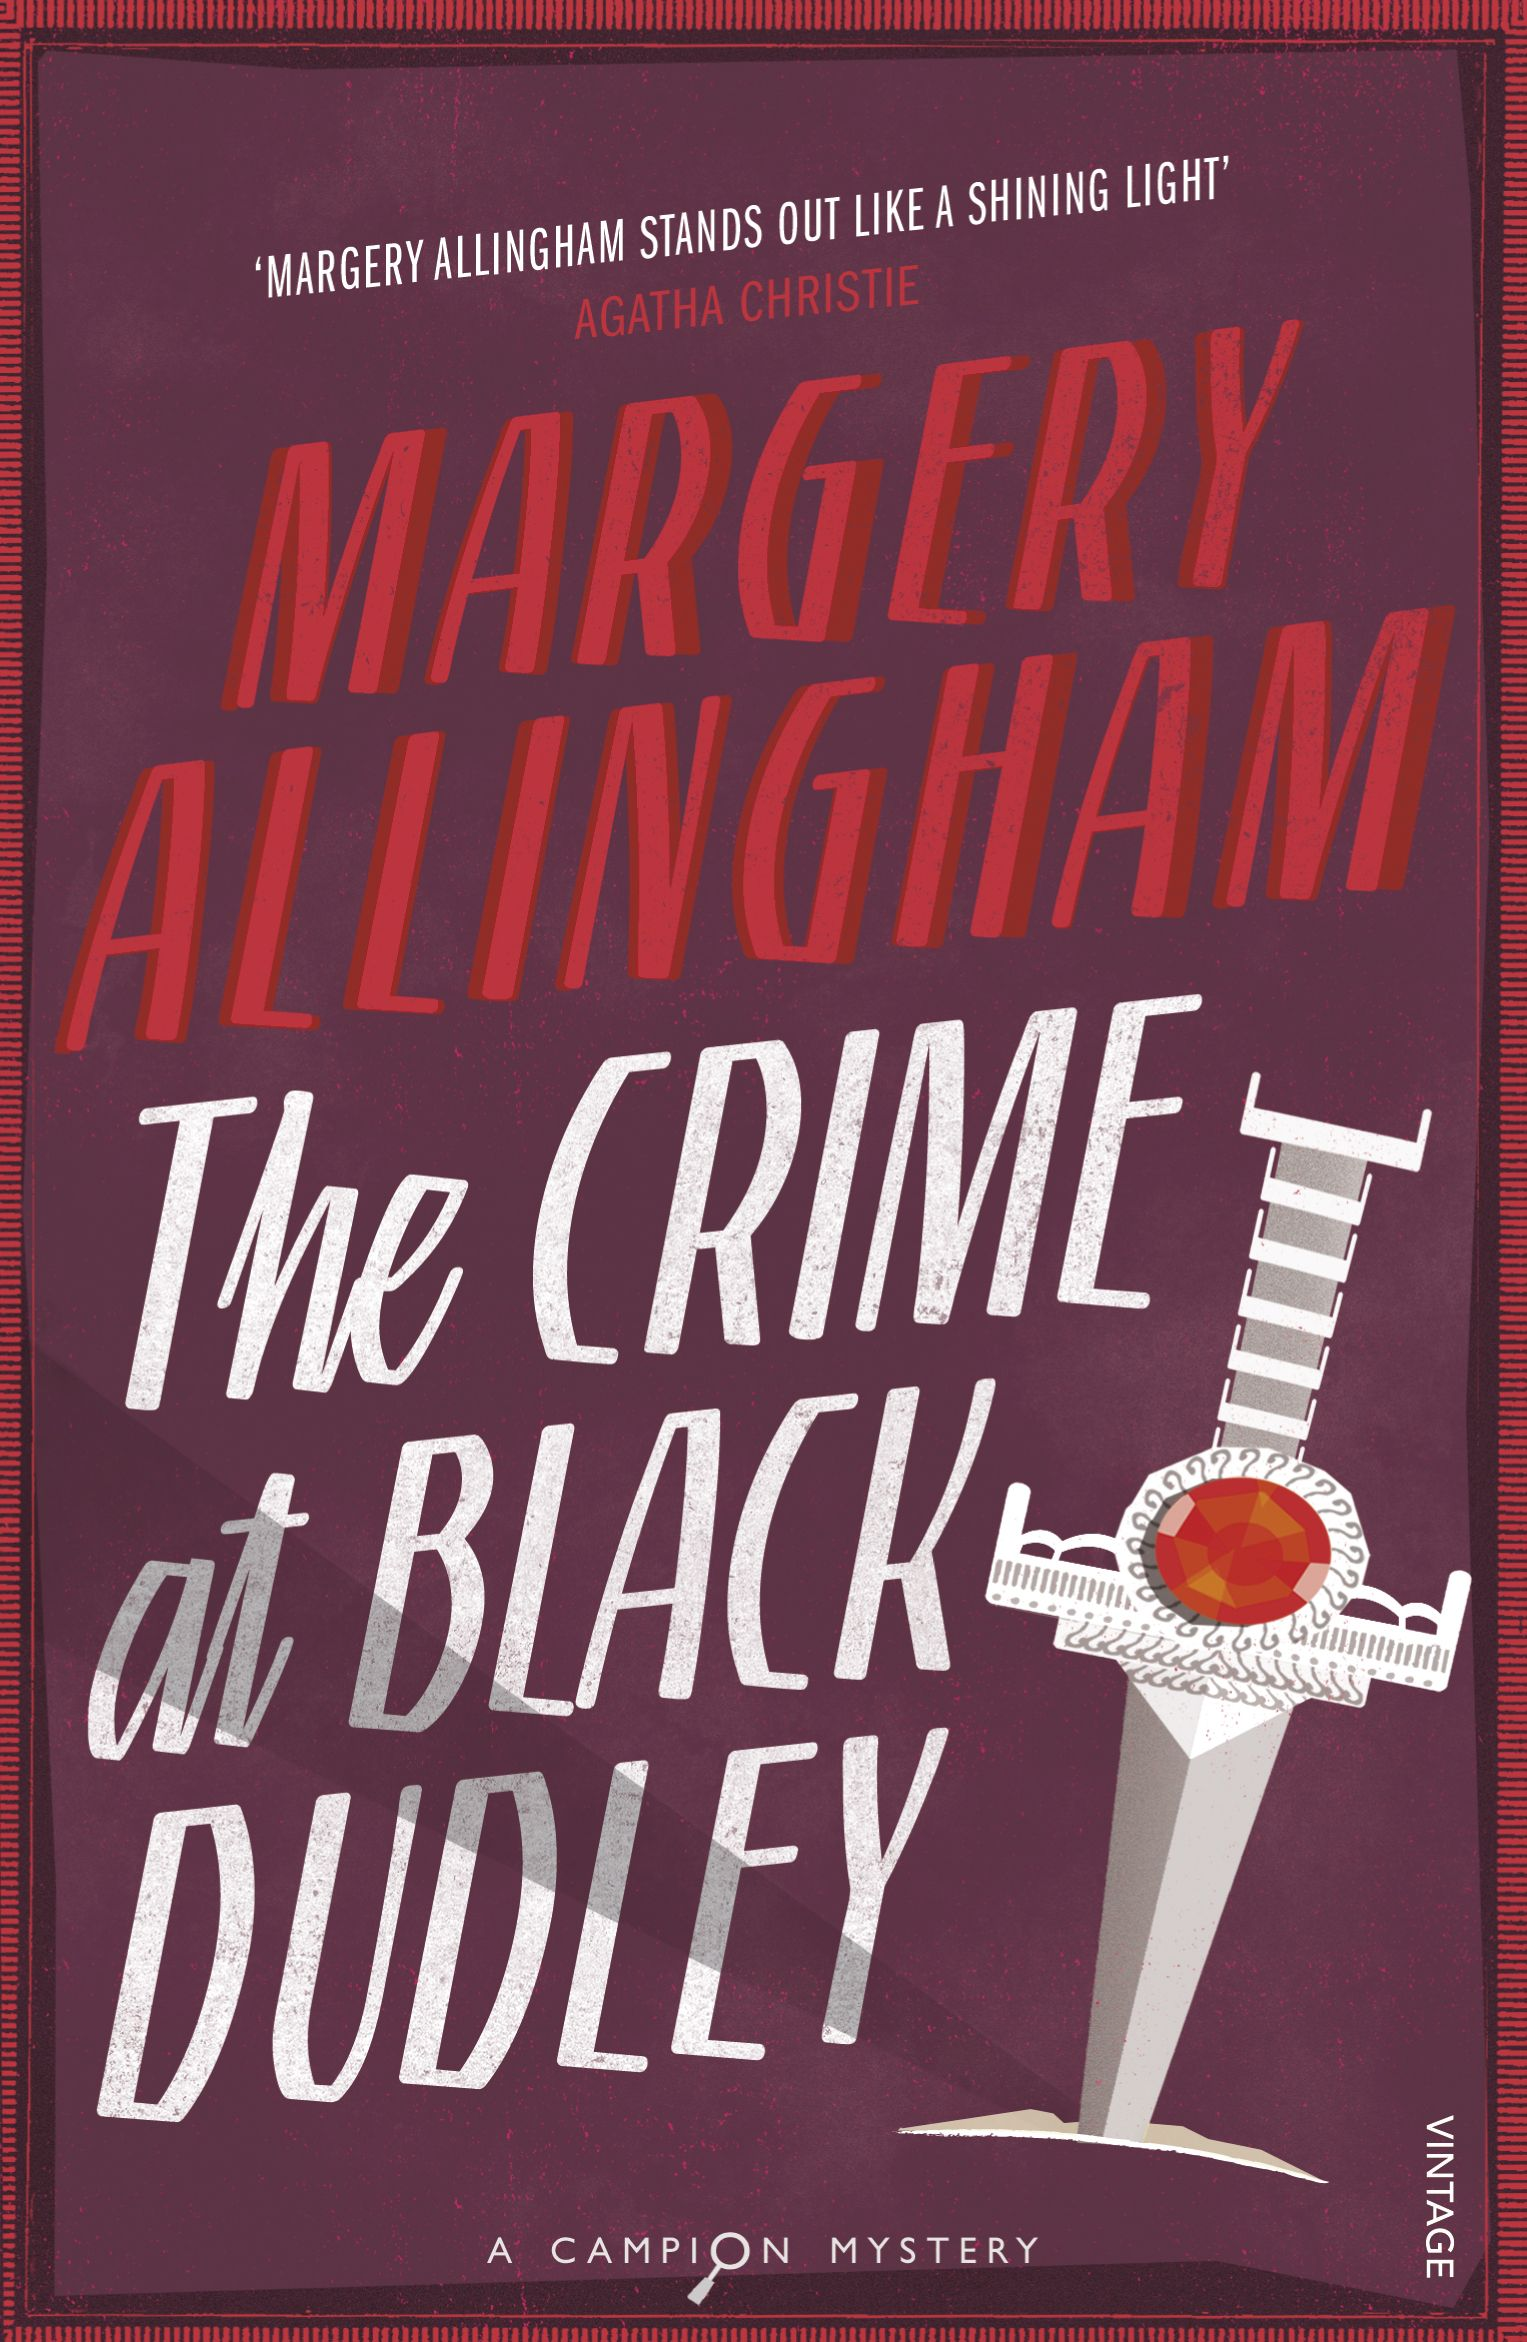 Extract The Crime at Black Dudley by Margery Allingham